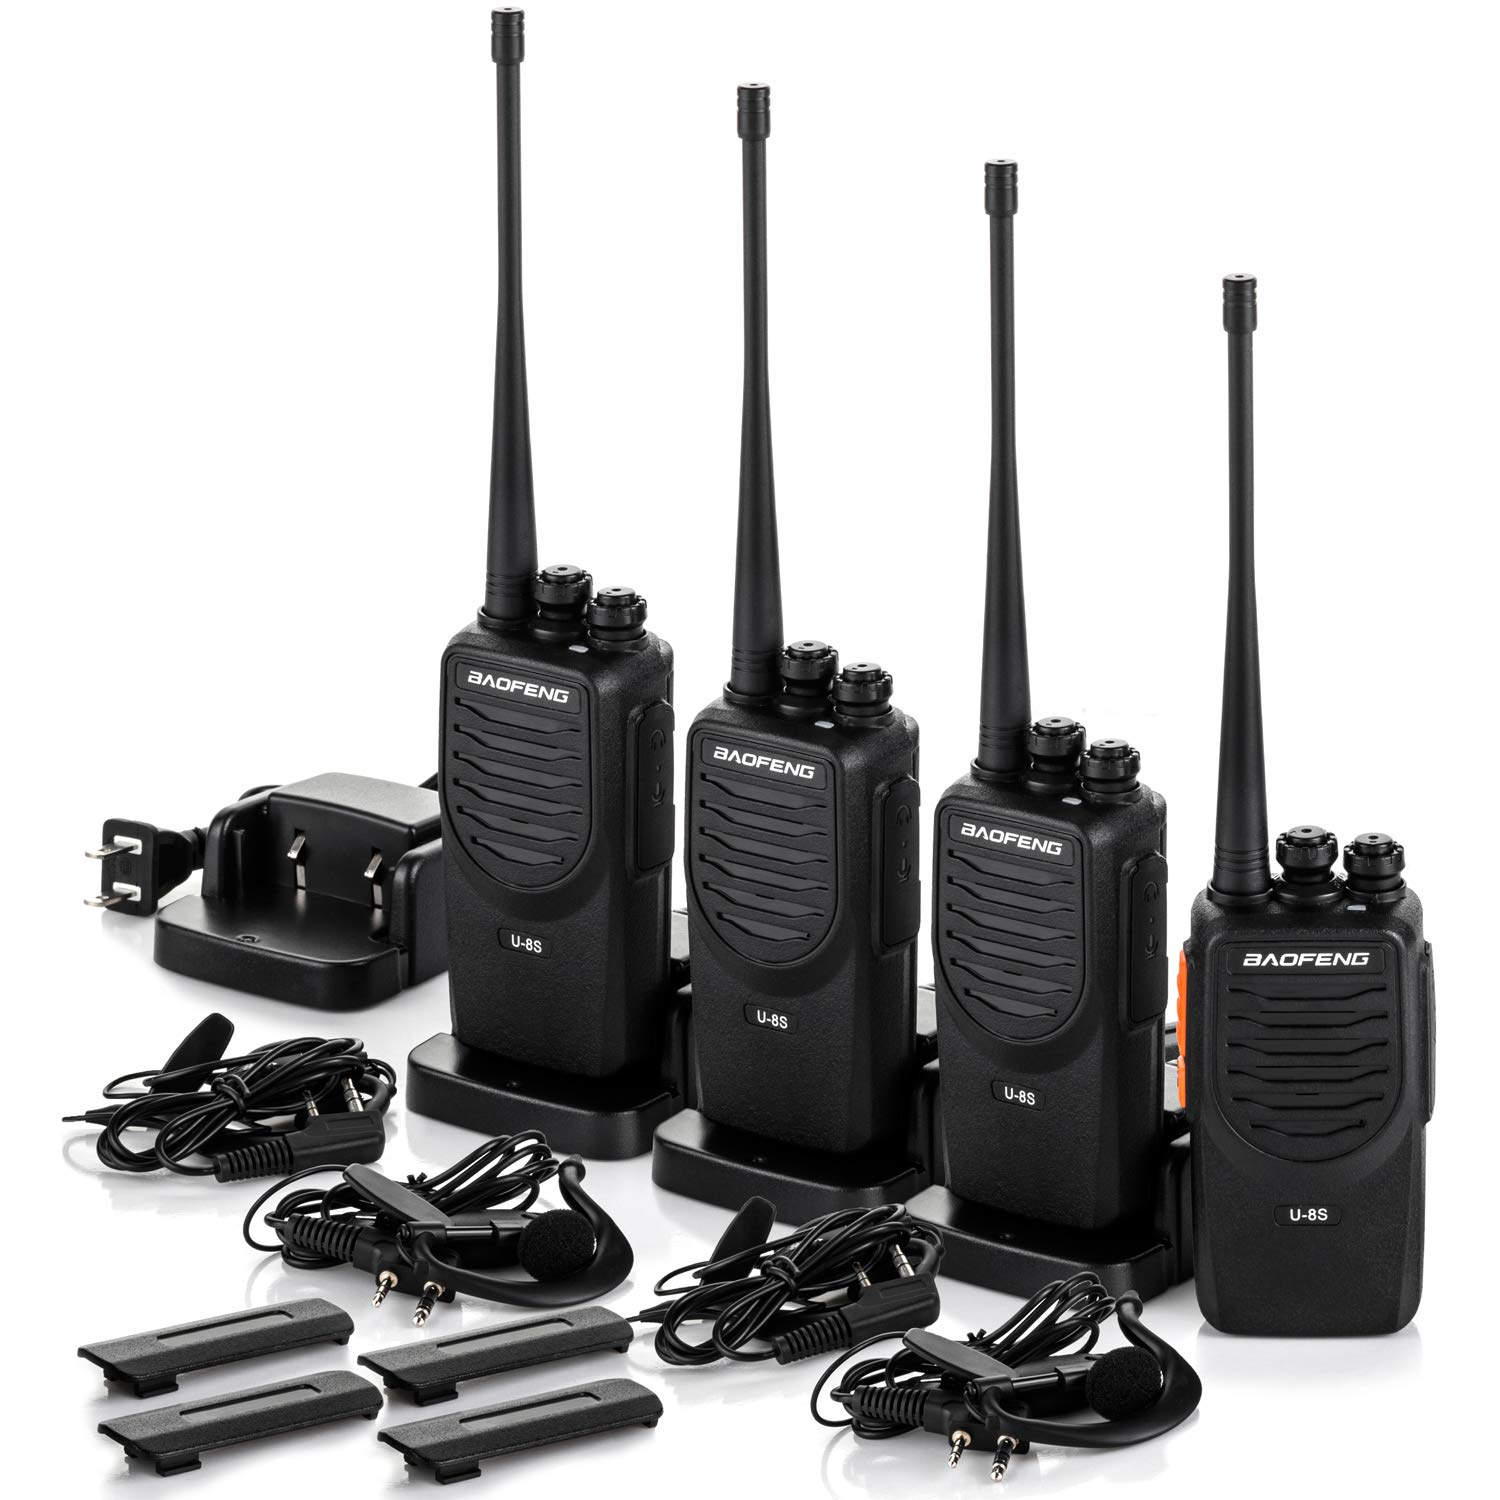 Upgraded BaoFeng Walkie Talkies 4 Pack Long Range Two Way Radio UHF 400 470MHz 16-Channel Walkie Talkies with Earpiece